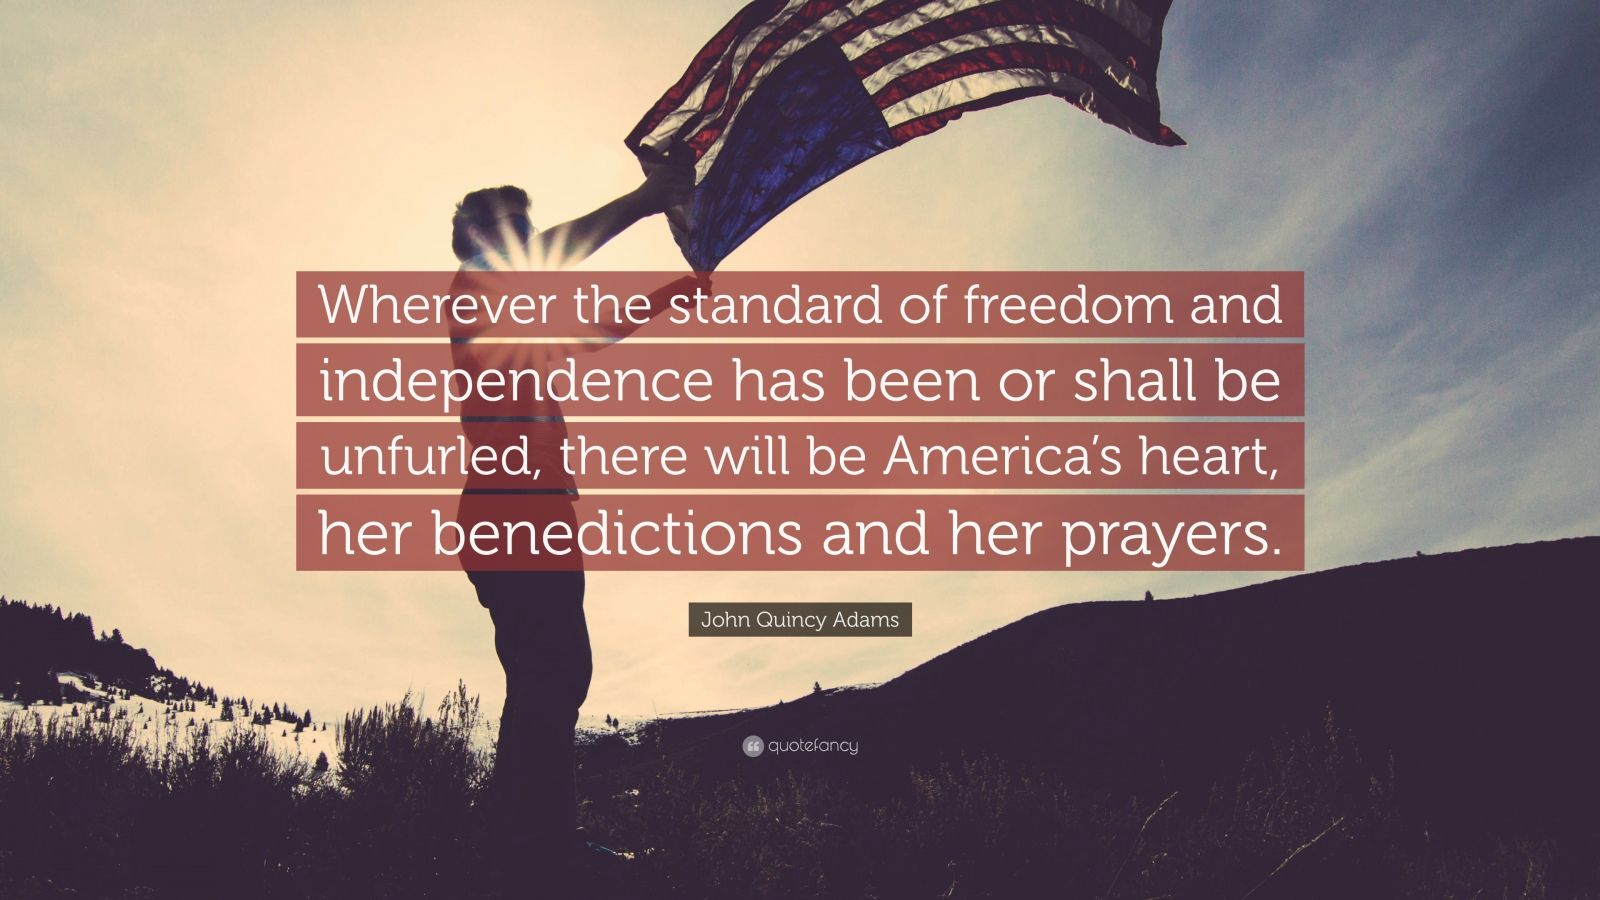 """John Quincy Adams Quote: """"Wherever the standard of freedom and independence has been or shall be unfurled, there will be America's heart, her benedictions and her prayers."""""""